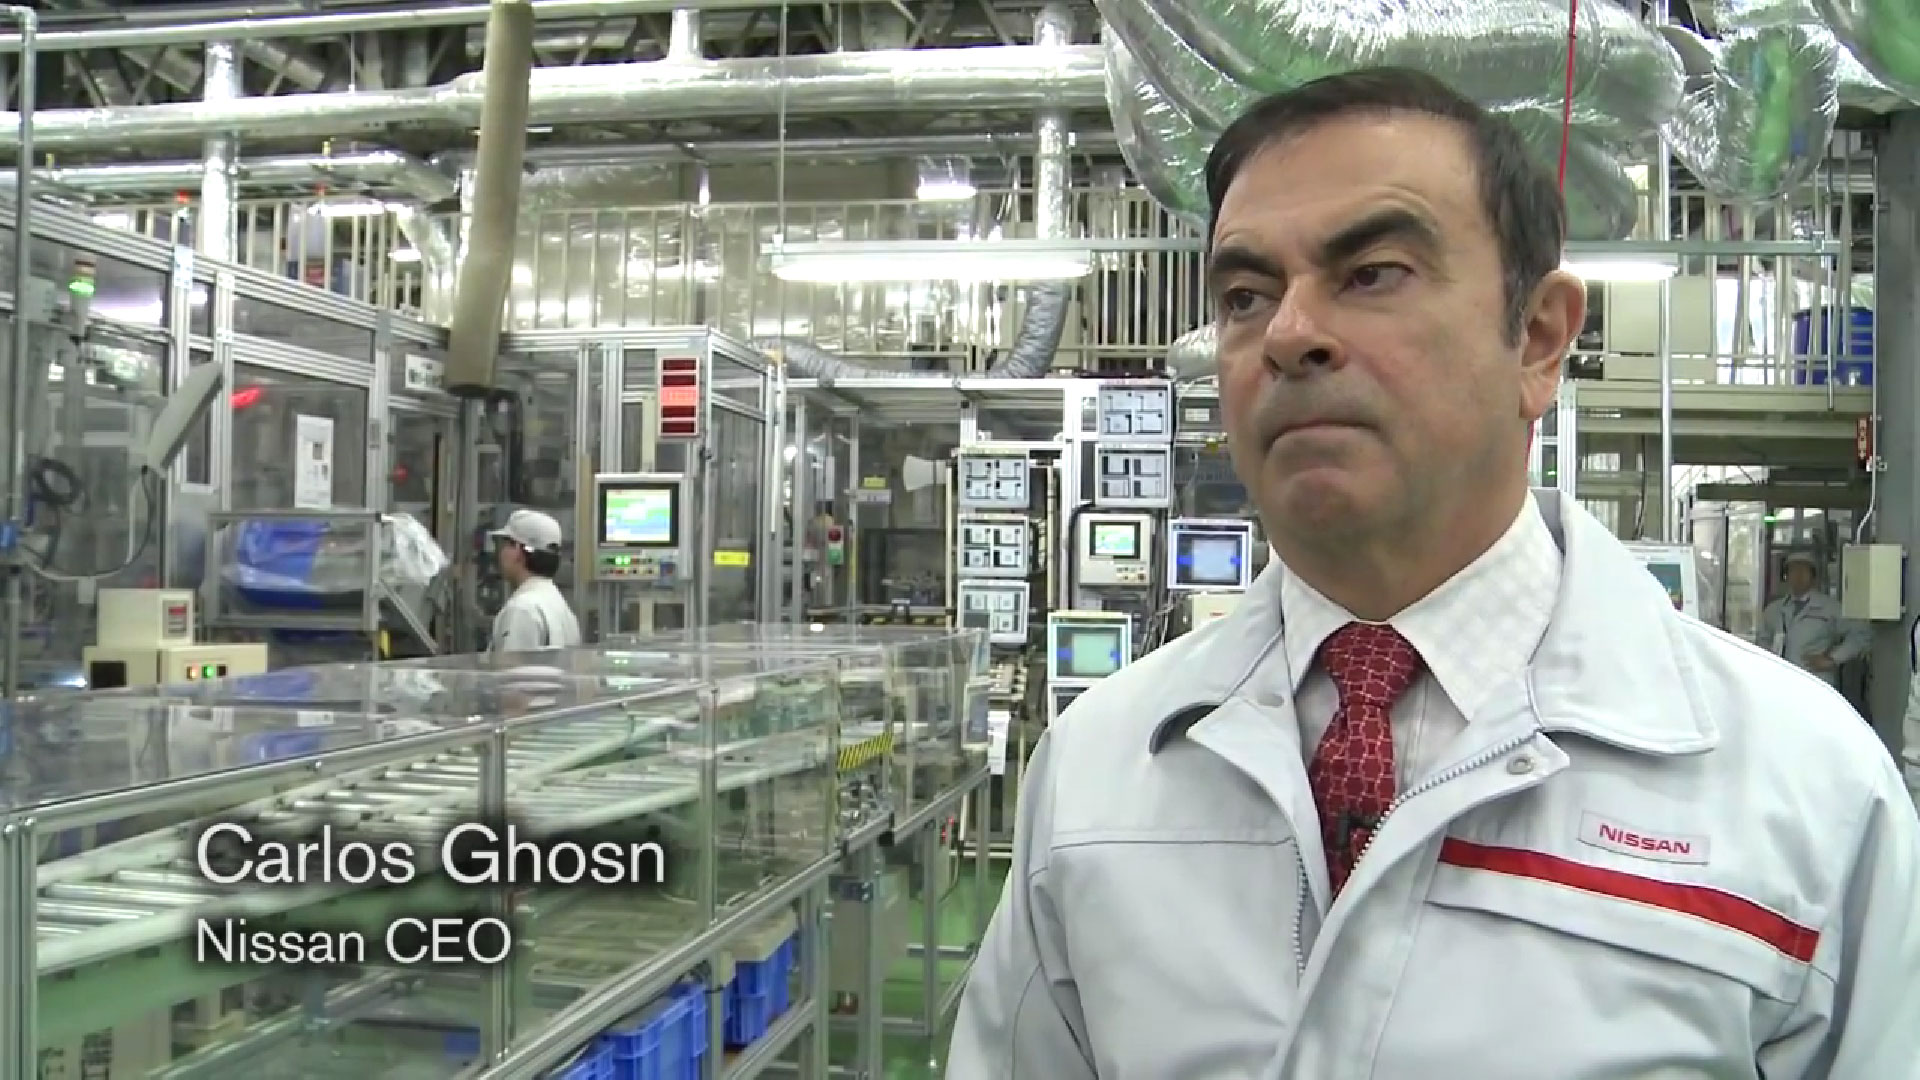 Carlos Ghosn über Wiederverwertung von Lithium-Ionen Batterien [Video]